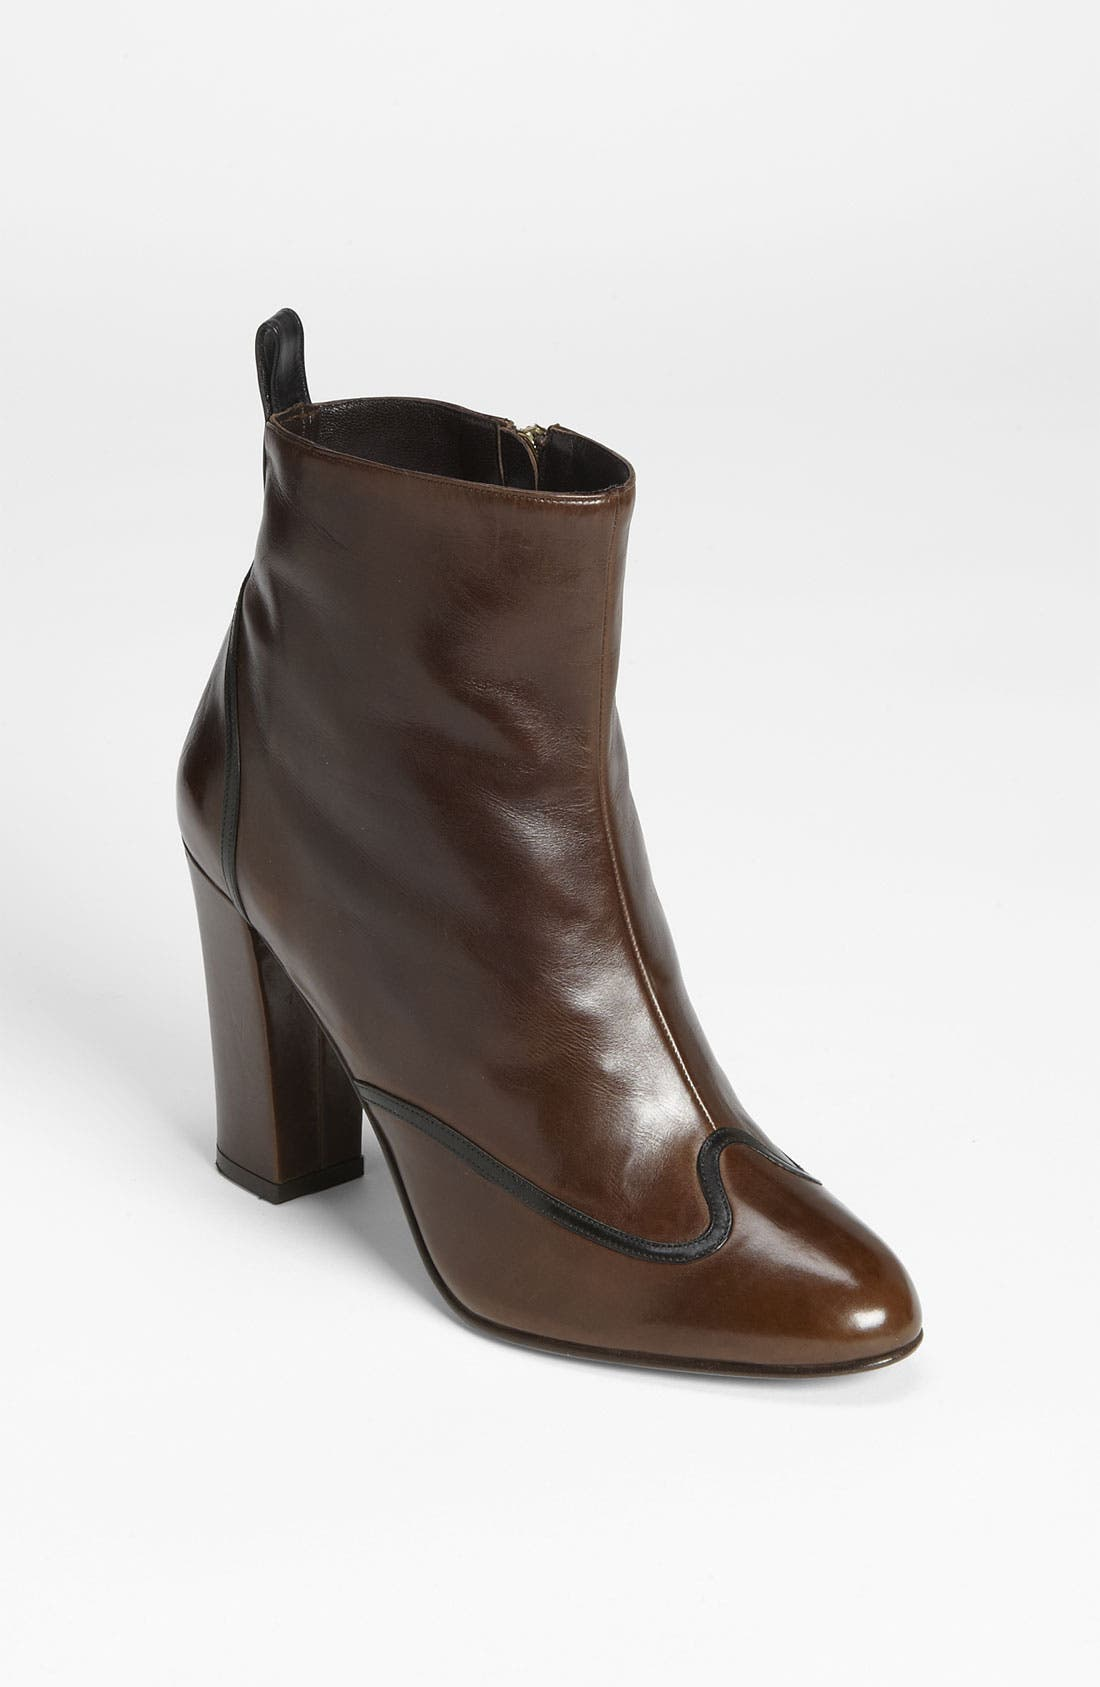 Alternate Image 1 Selected - Delman 'Folly' Ankle Boot (Online Exclusive)